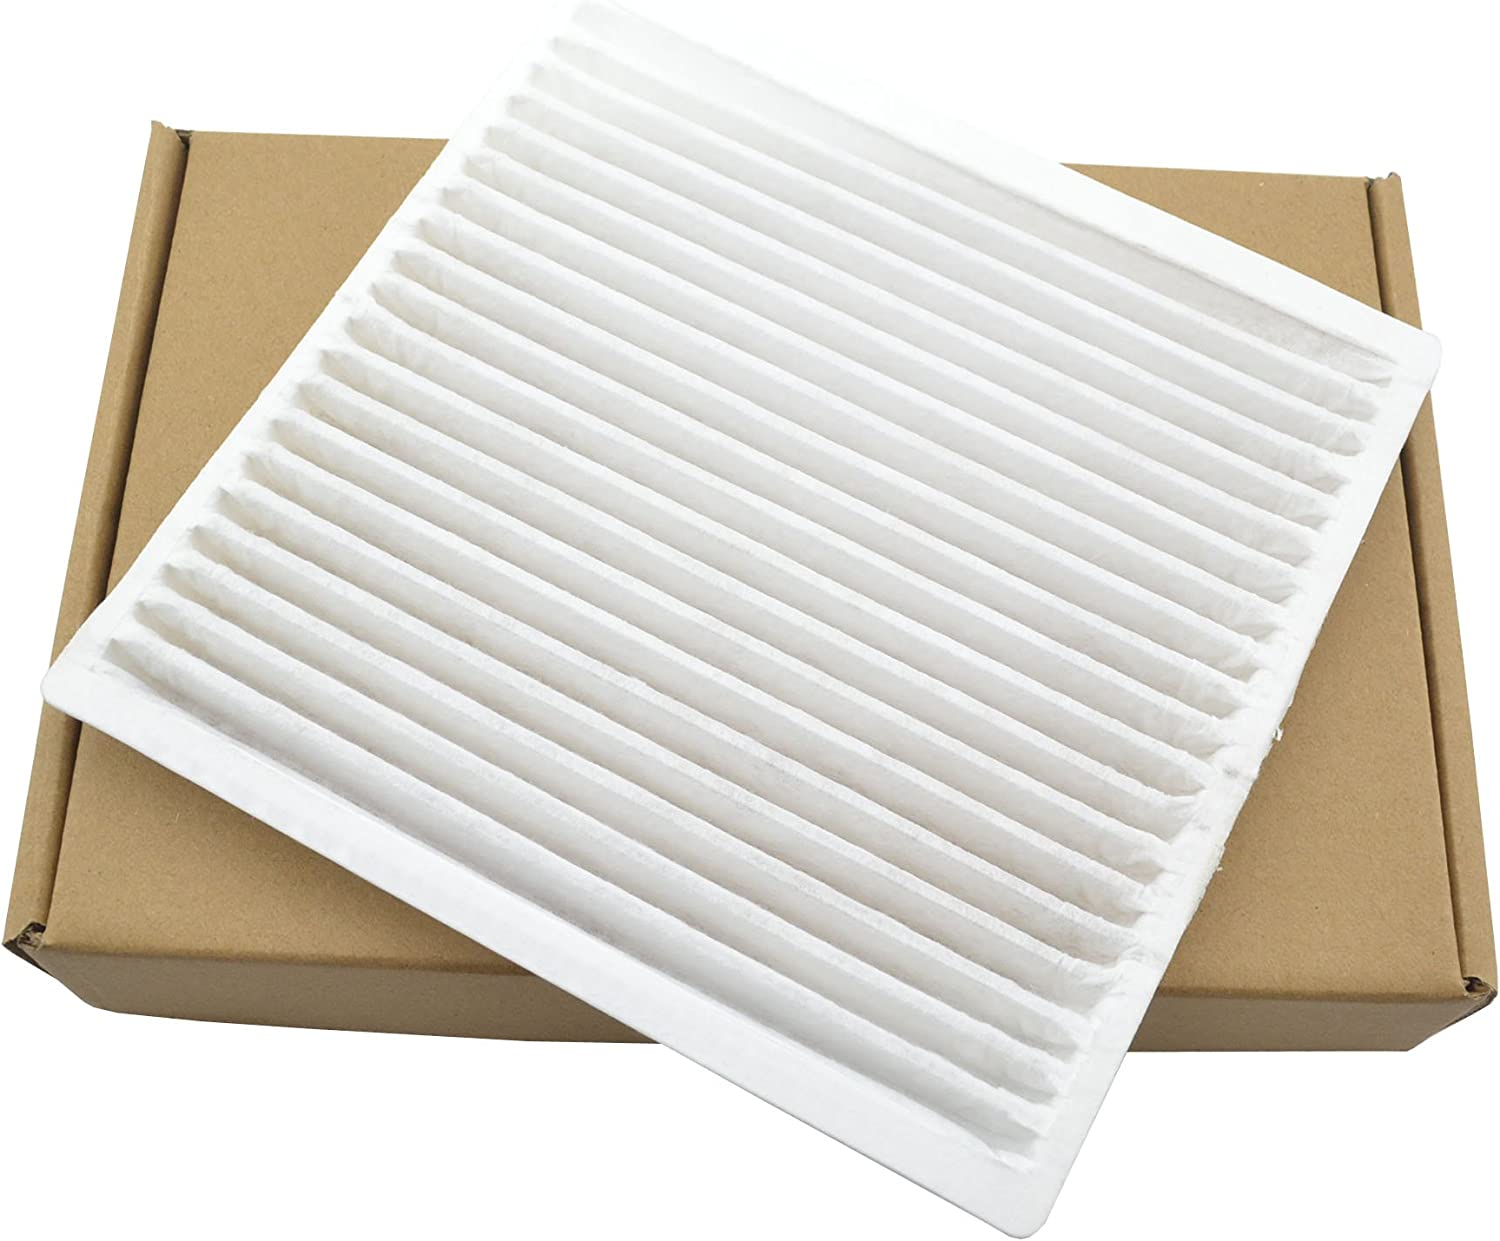 Engine Air Filter /& Cabin Air Filter for Toyota Prius 2004-2009 87139-47010